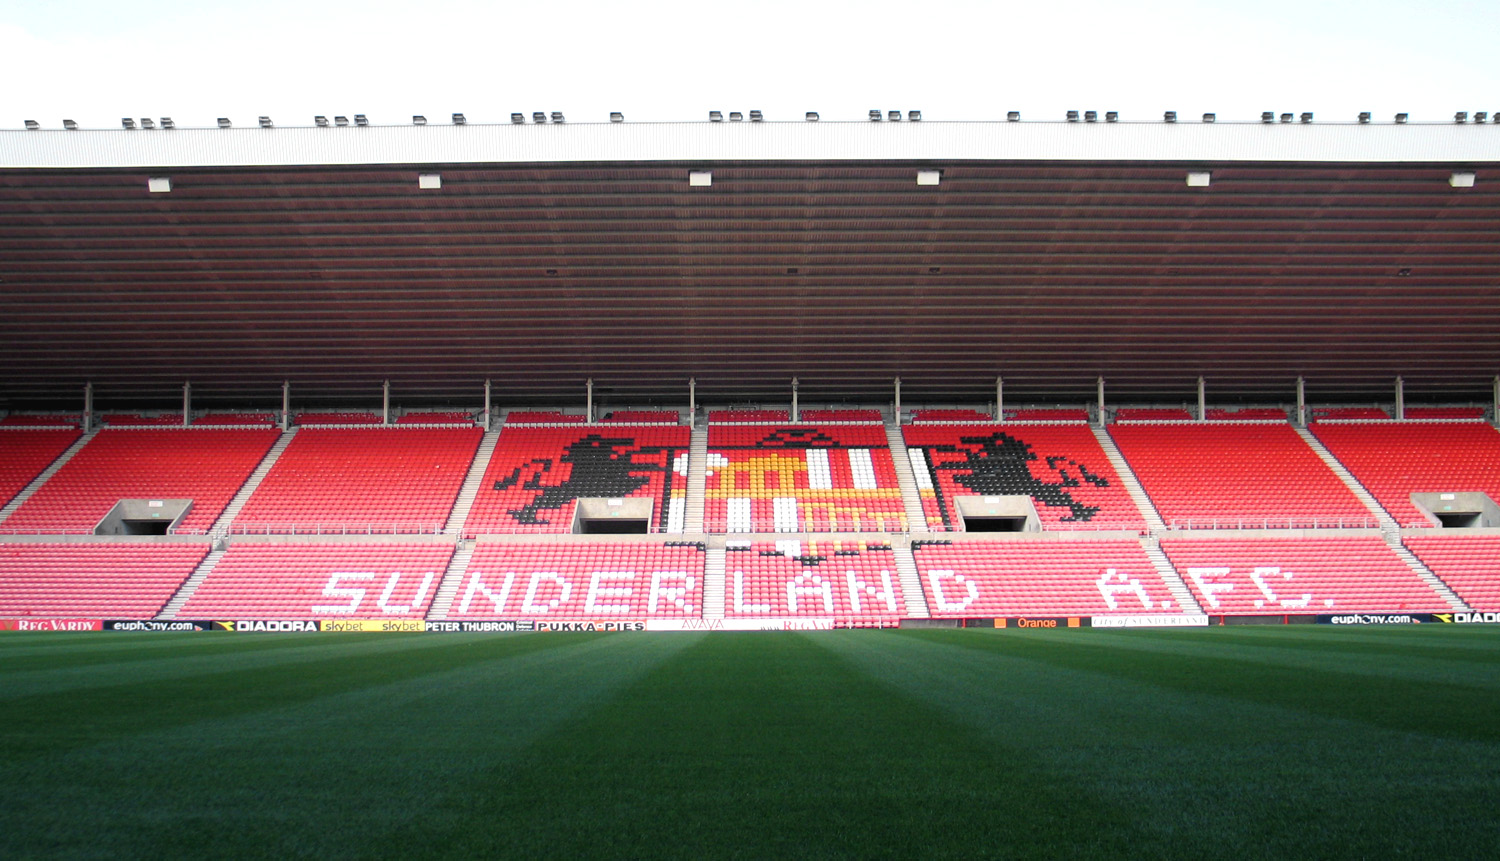 The Stadium of Light hosts this key match for the Black Cats